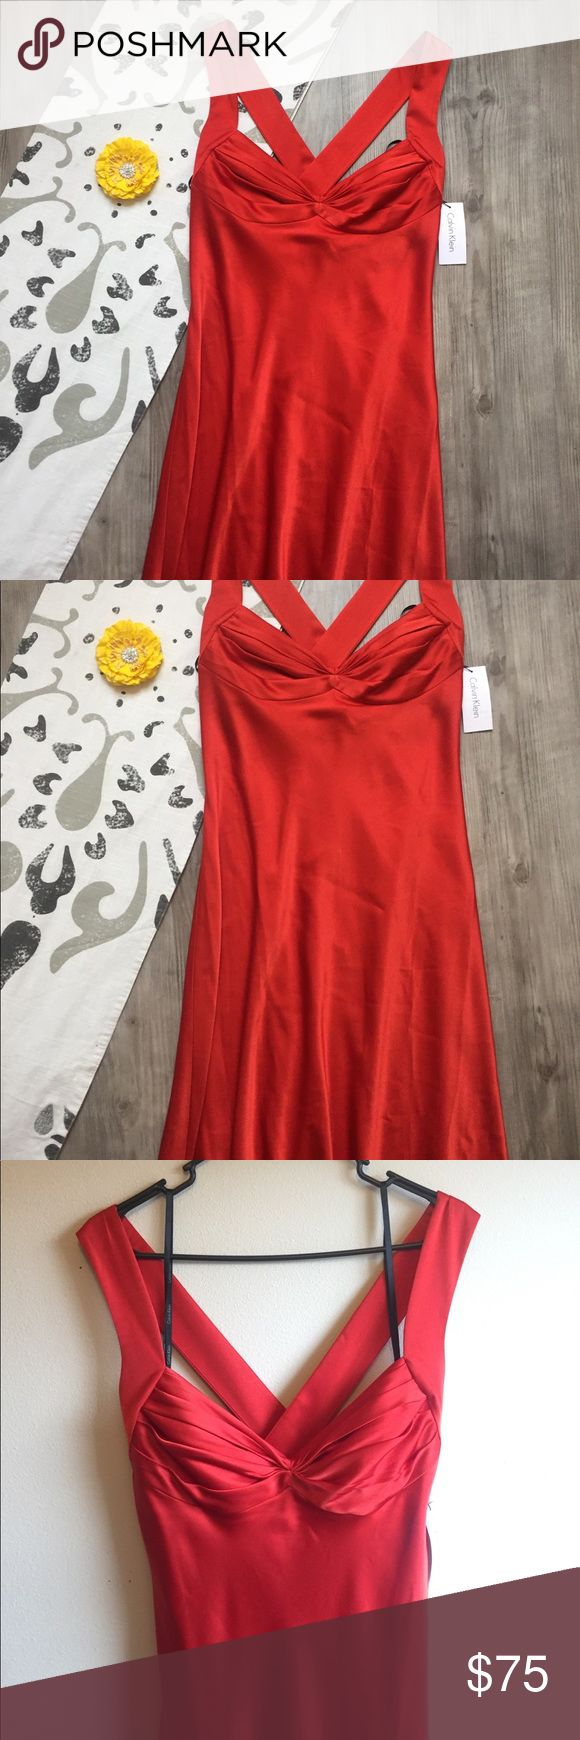 "Calvin Klein Floor Length Gown Absolutely beautiful NWT Calvin Klein gown! Just in time for prom season, this gorgeous gown features a criss-cross back and a sweetheart style neckline; fully lined.  Brand new with tags, this dress is perfect for standing out from the crowd.  Color is listed as Fire; it's not a pure red or orange but that beautiful deep color at the center of a flame -- stunning.  Strap - floor: 62"" Back - floor: 52"" Bottom (fanned): 46"" Strap width: 1.75"" Shoulder…"